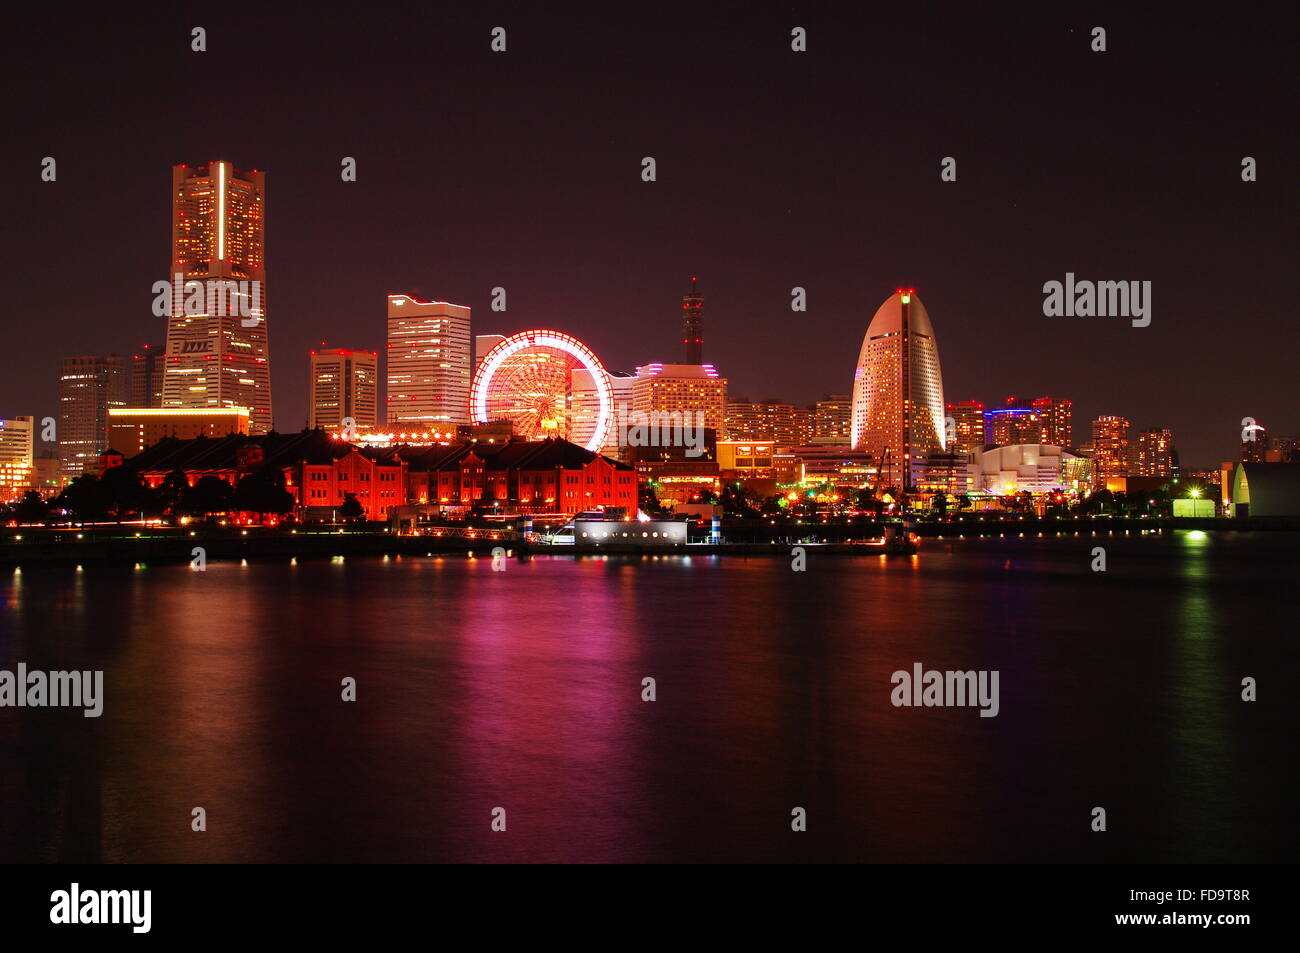 River In Front Of Illuminated Cityscape Against Sky At Night - Stock Image